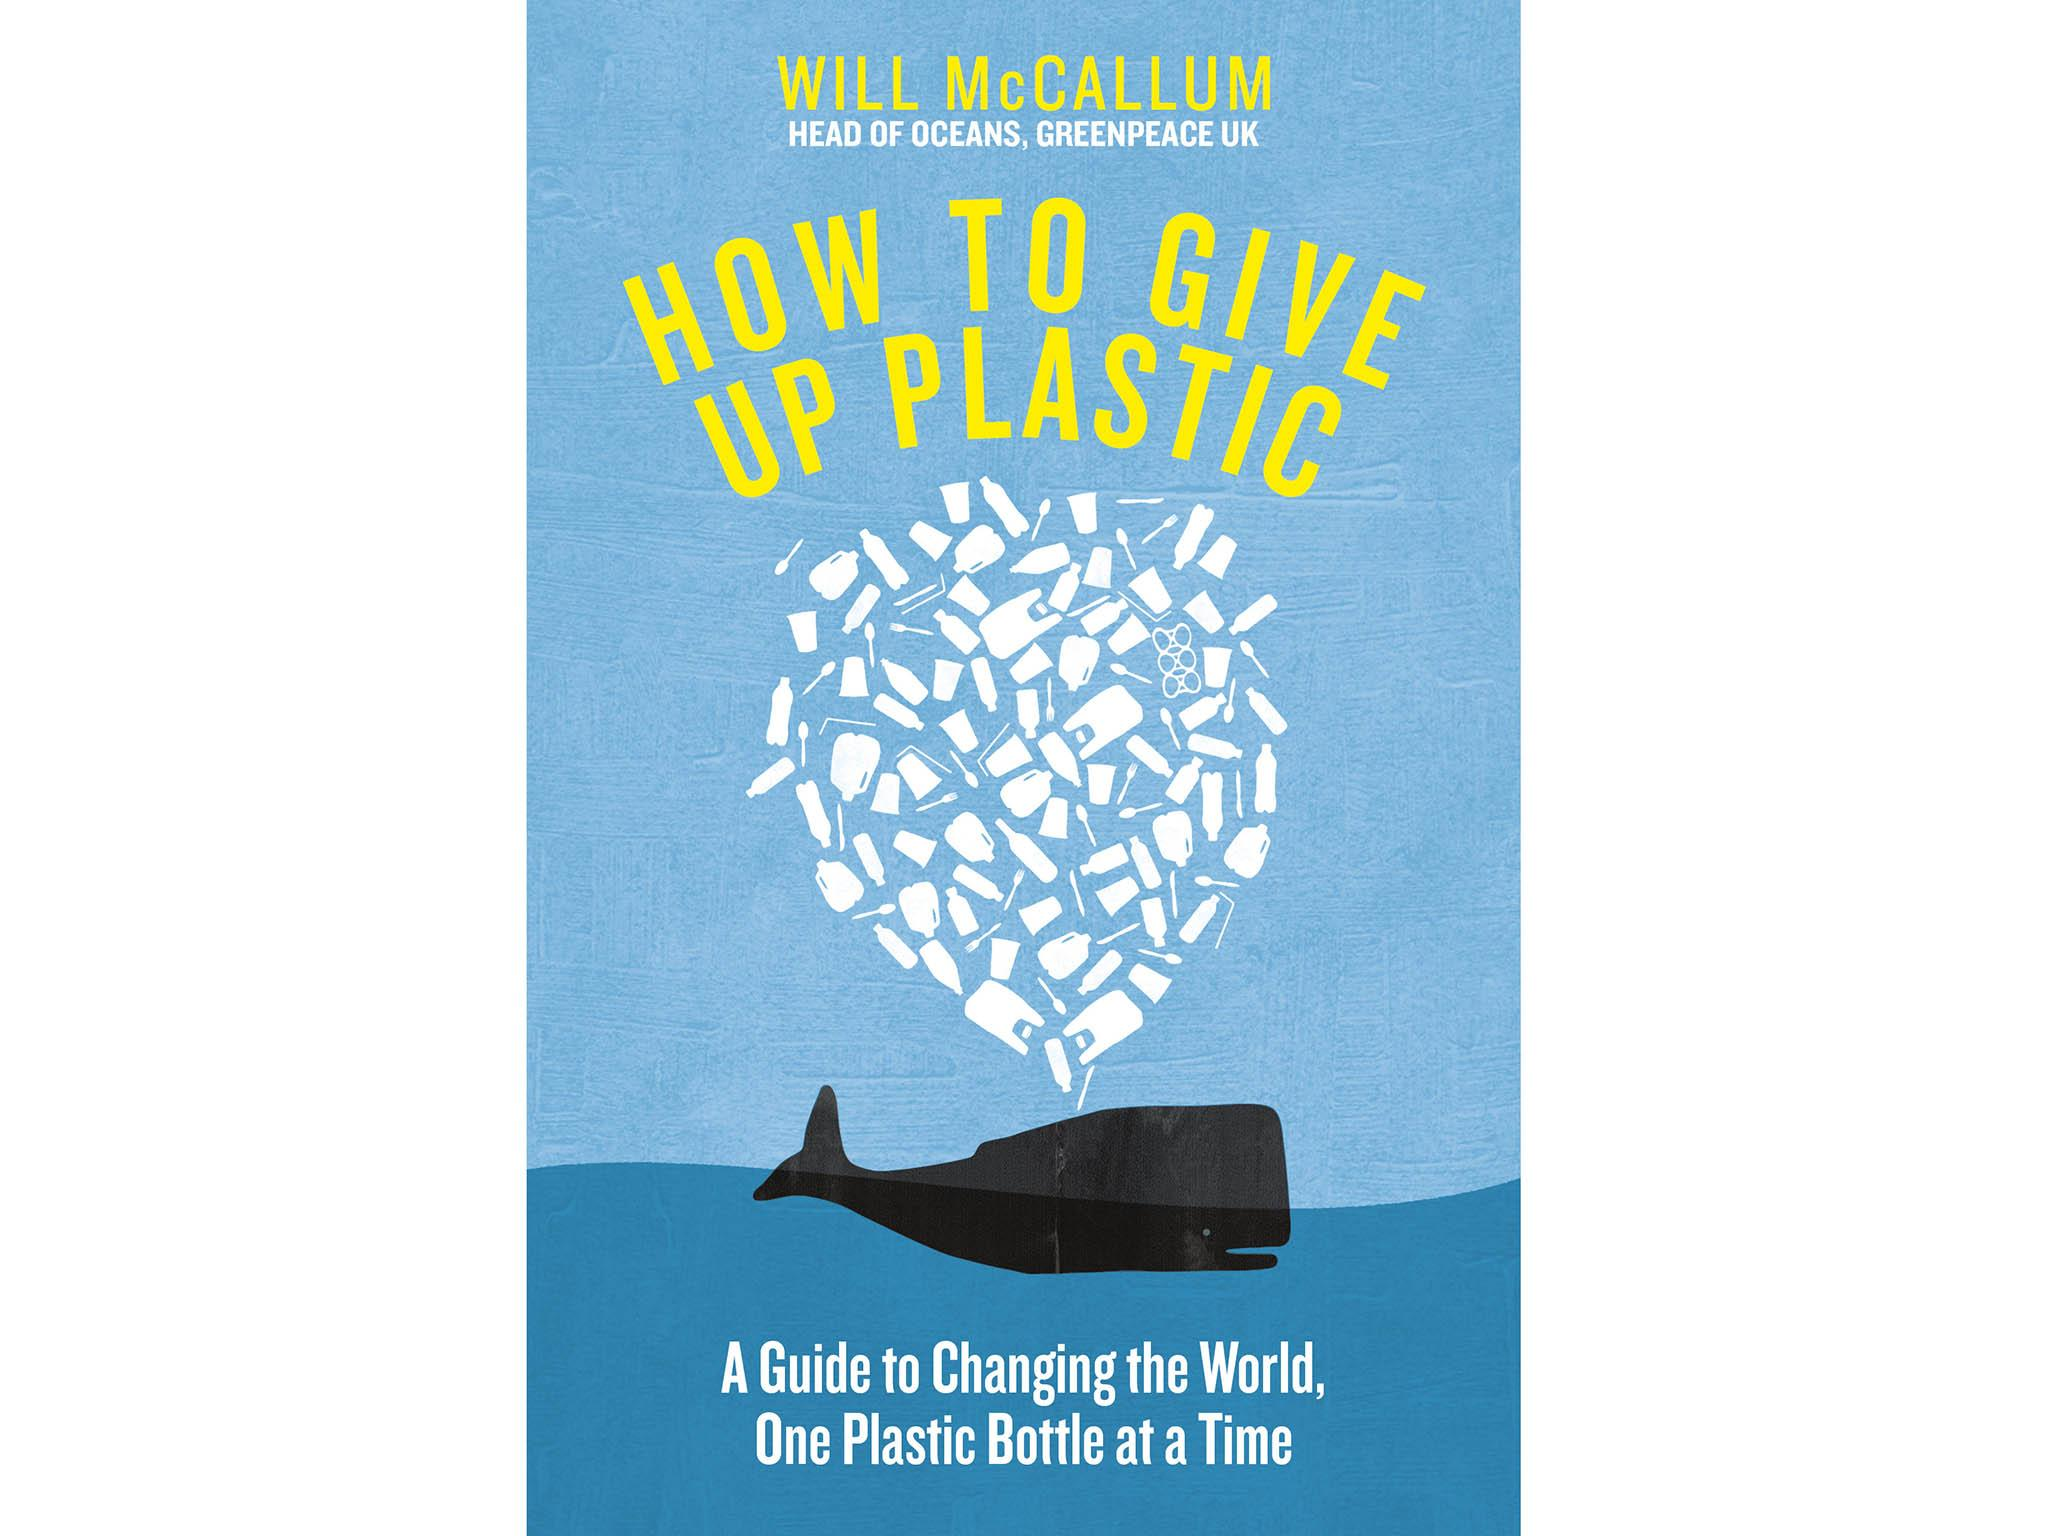 Best plastic-free books to help prevent pollution